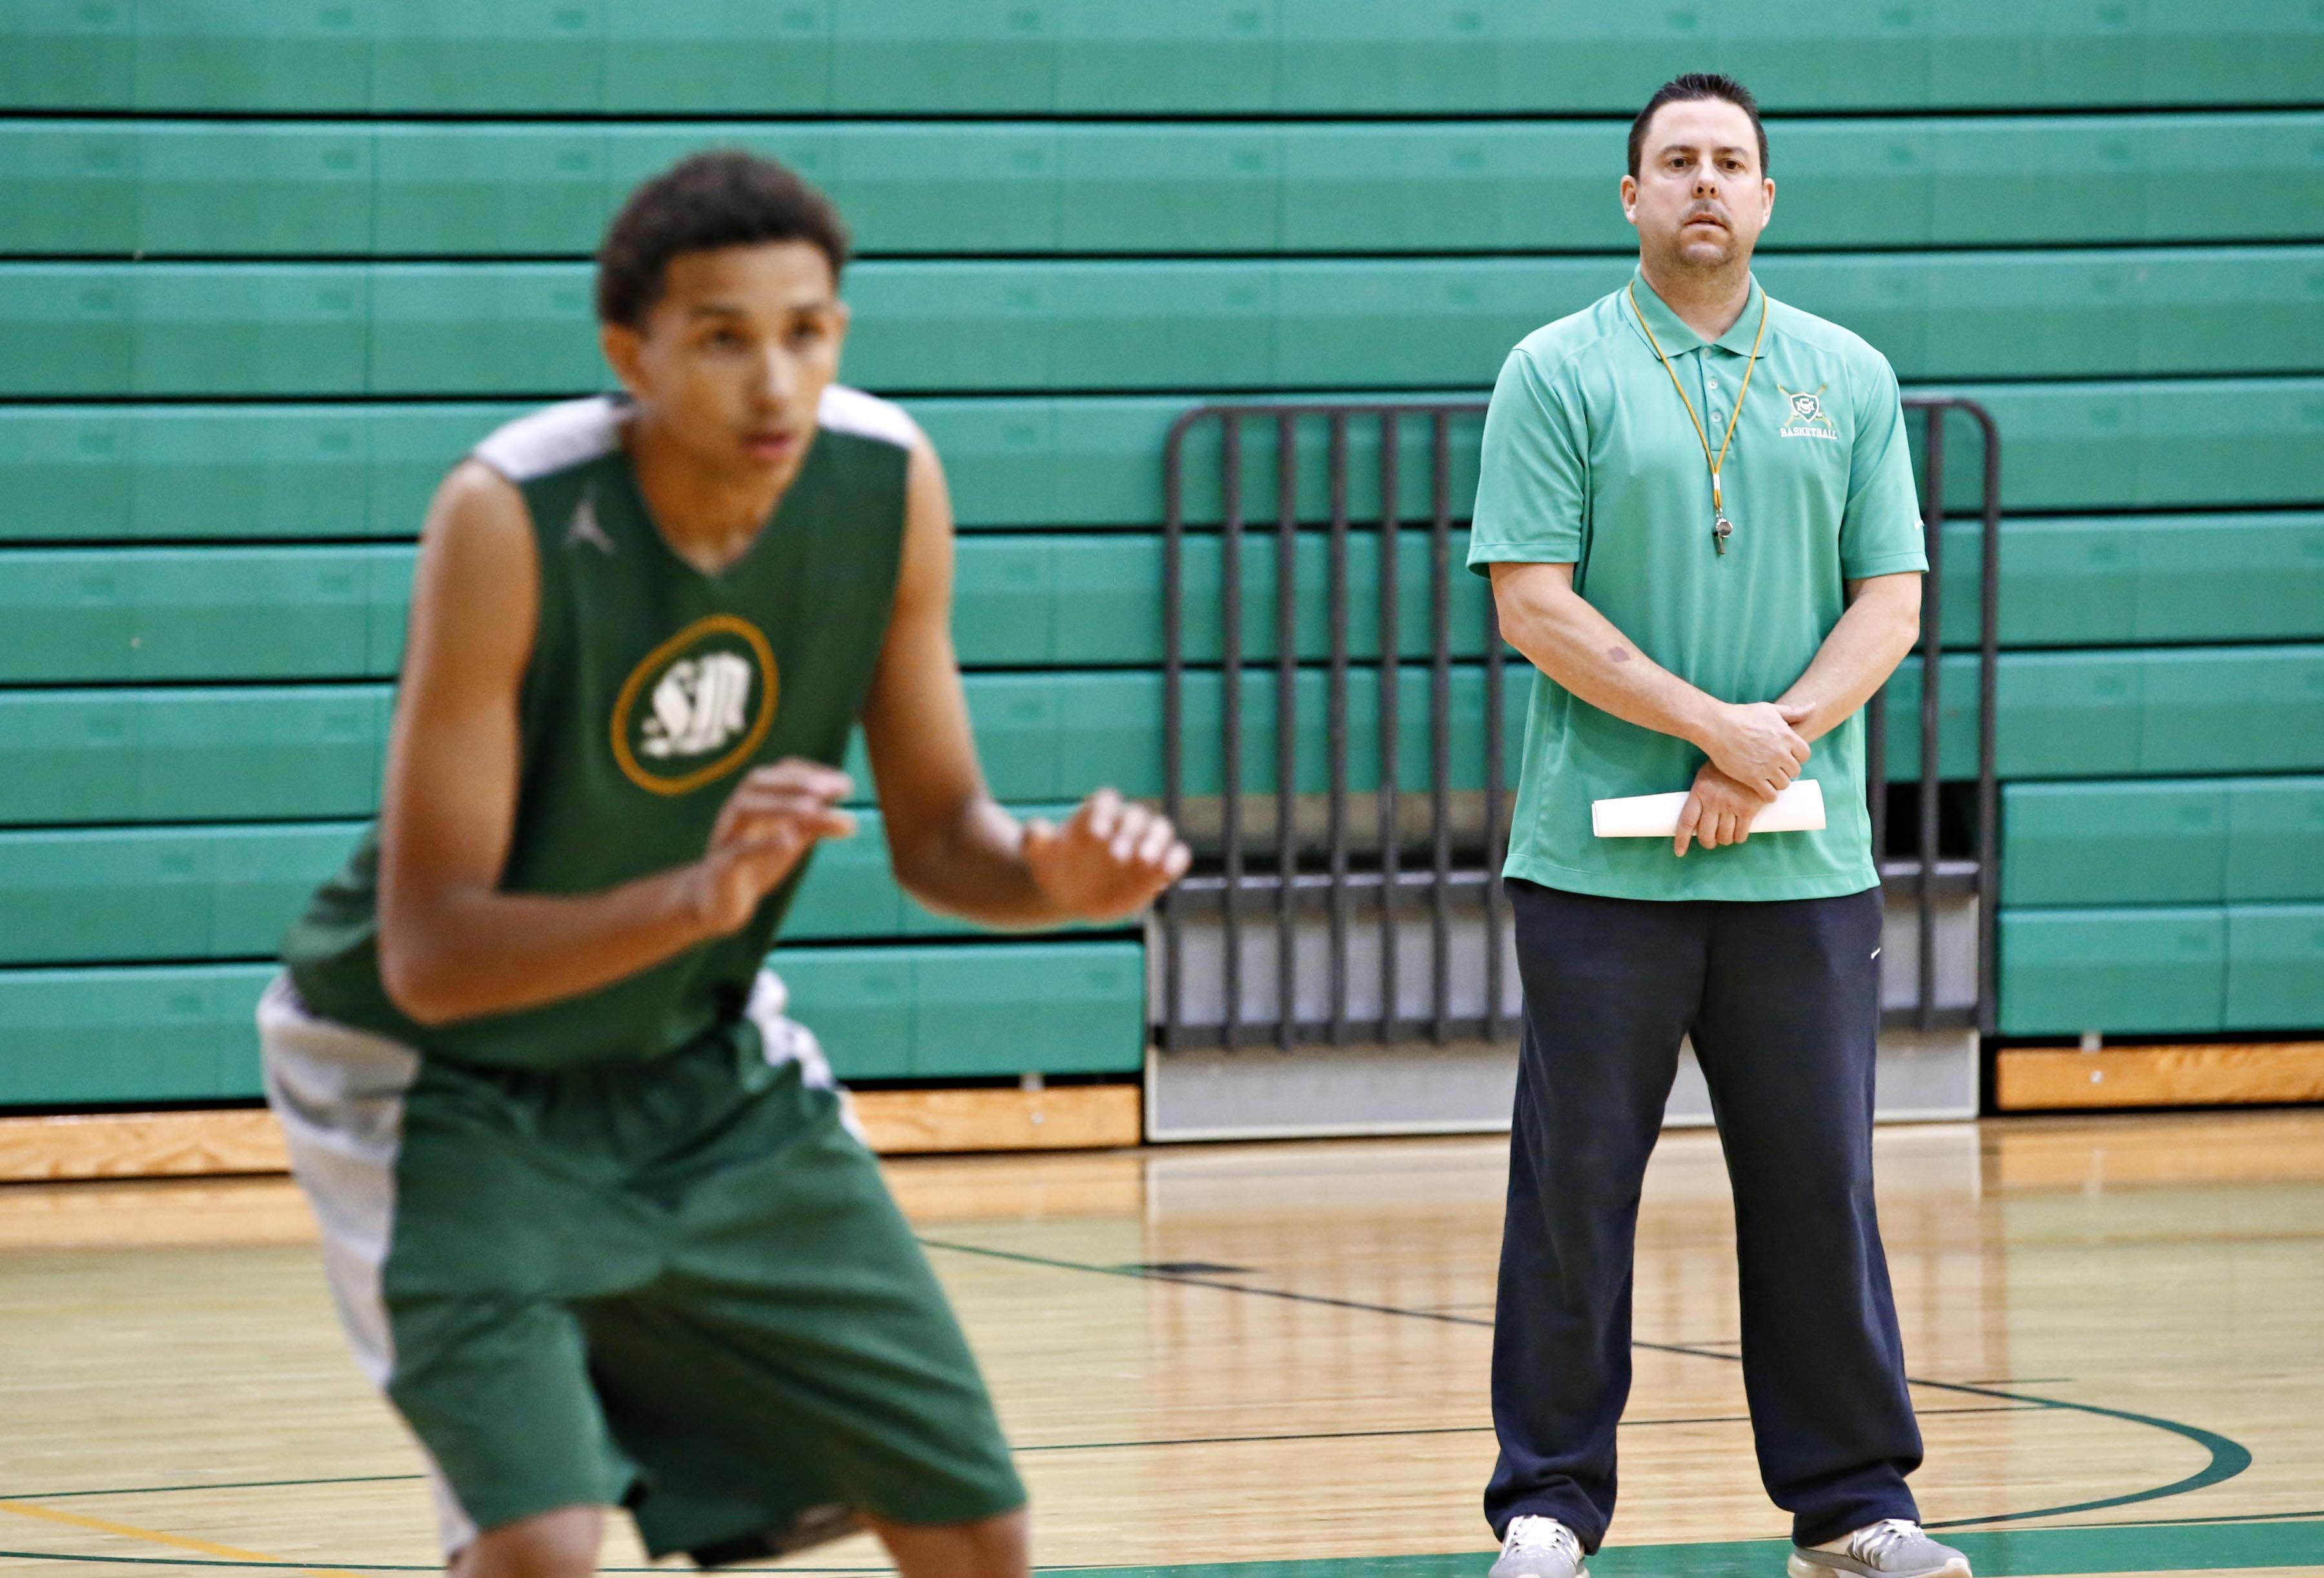 K.J Hymes, l, and Head Coach, Ty Amundsen of the St. Mary's Knights on December, 1, 2015.